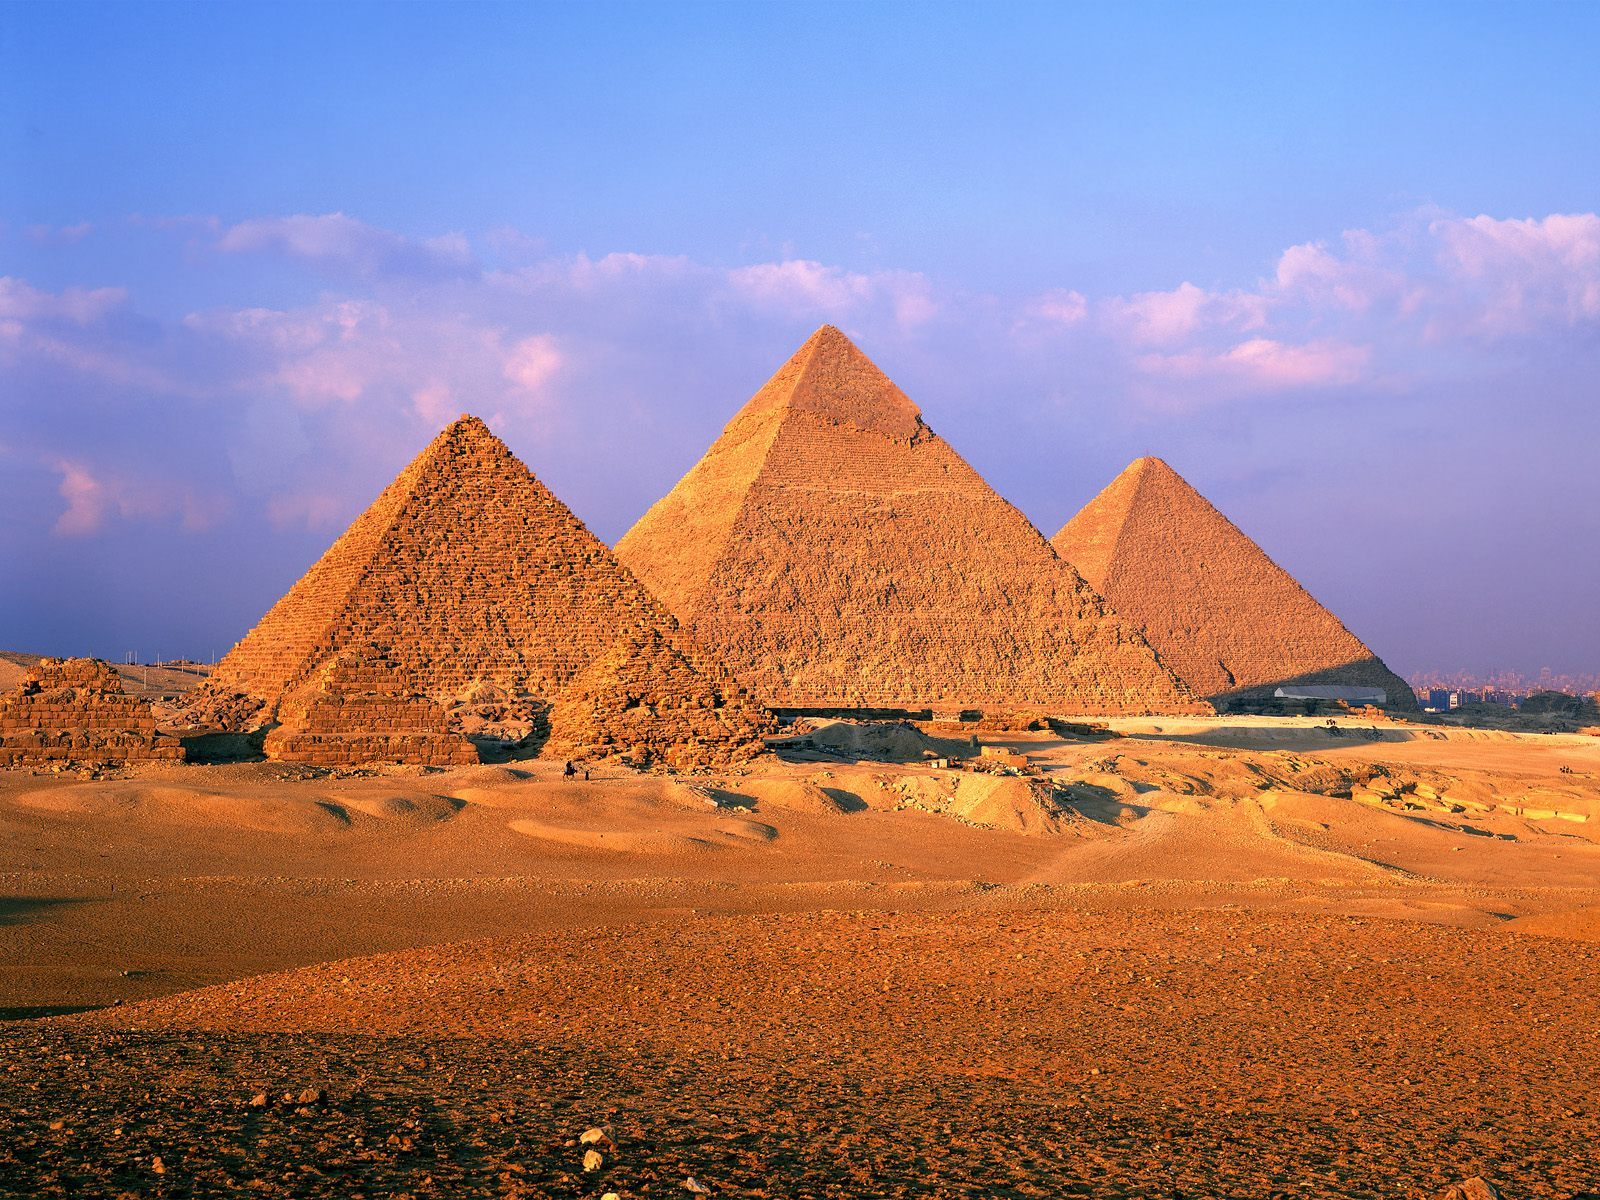 egyptian and mexican pyramids If you ask yourself how many pyramids are in the world you will be lost in thoughts and it least you wouldn't find the right number no matter who you are a person who has never interested in pyramids or you have phd in history, it's not matter you do not find an answer on this question.